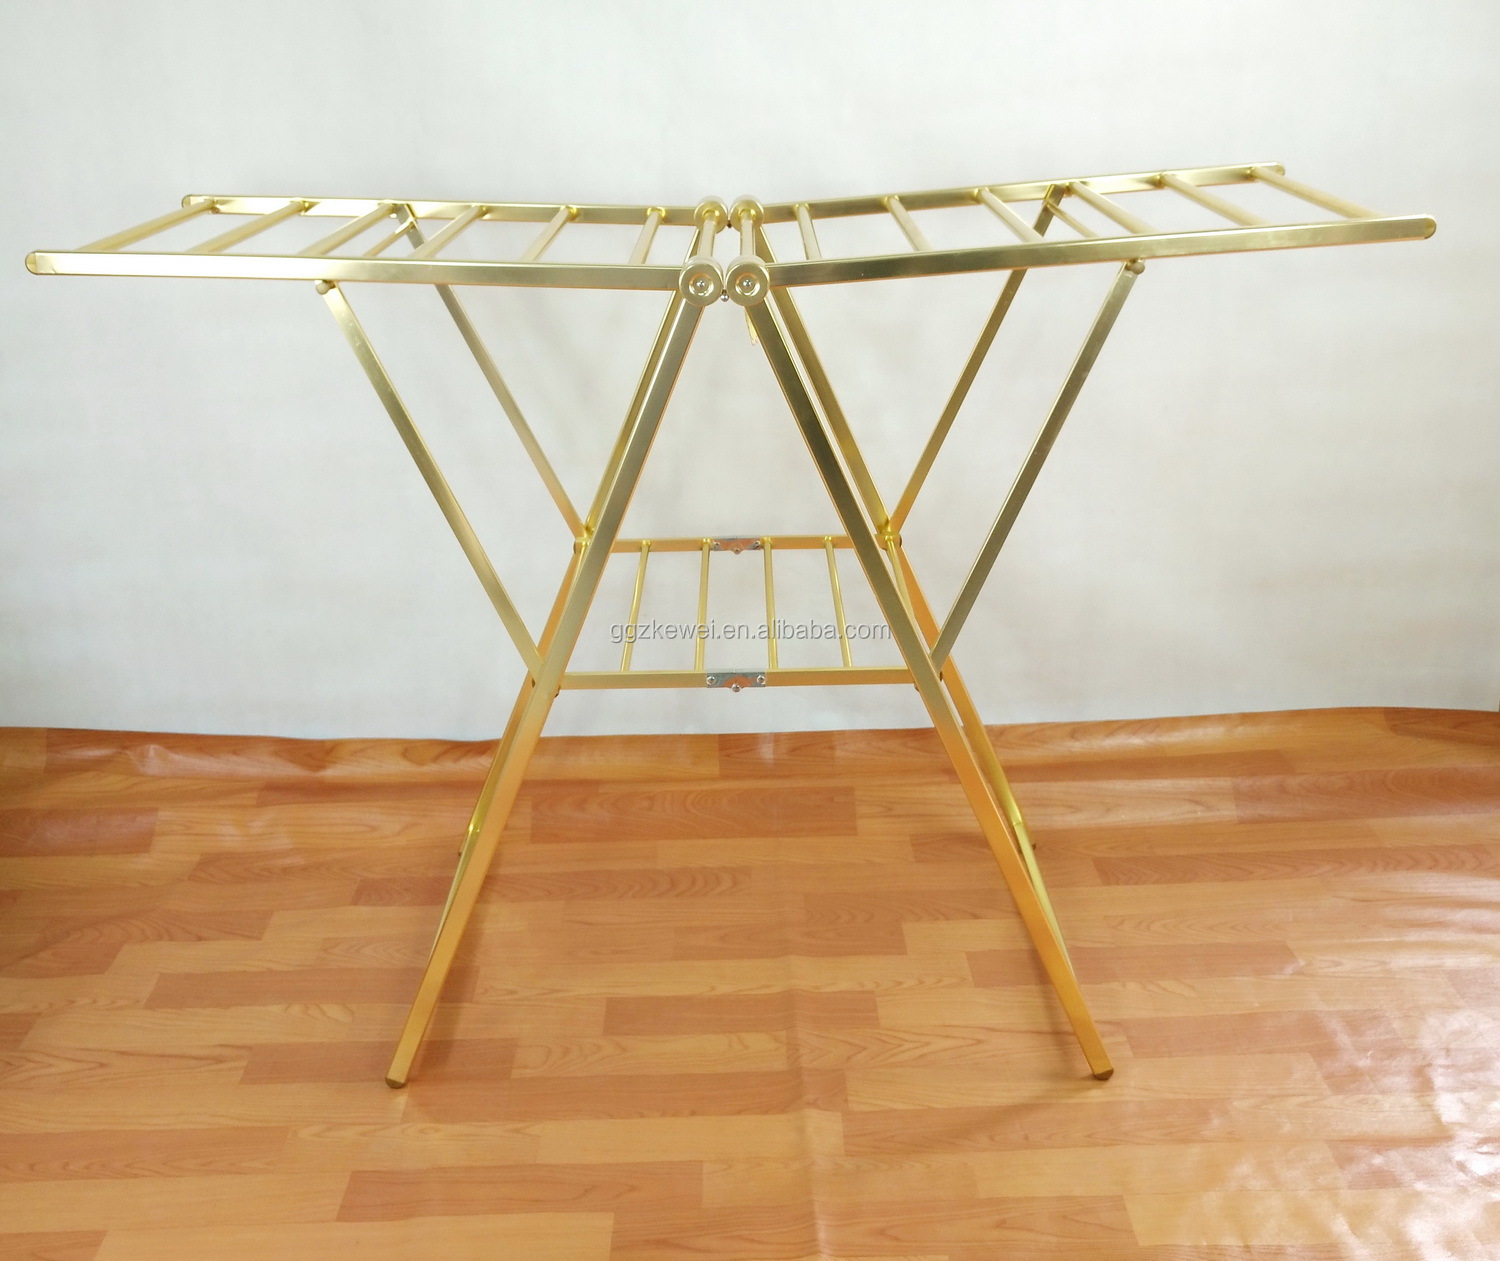 Aluminium Butterfly Folding Clothes Drying Rack, Butterfly Airer , King Size Laundry Hanger Stand AL-6019G